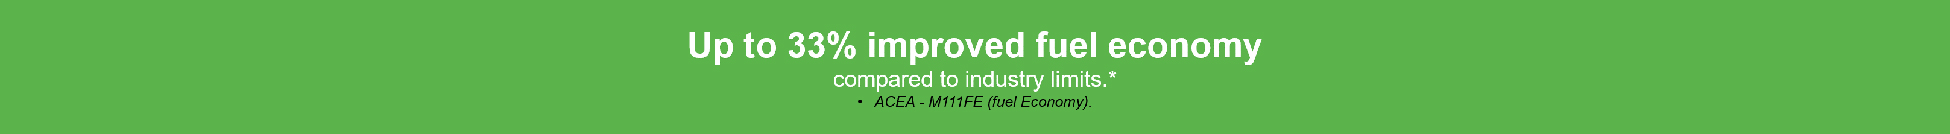 Improved fuel economy